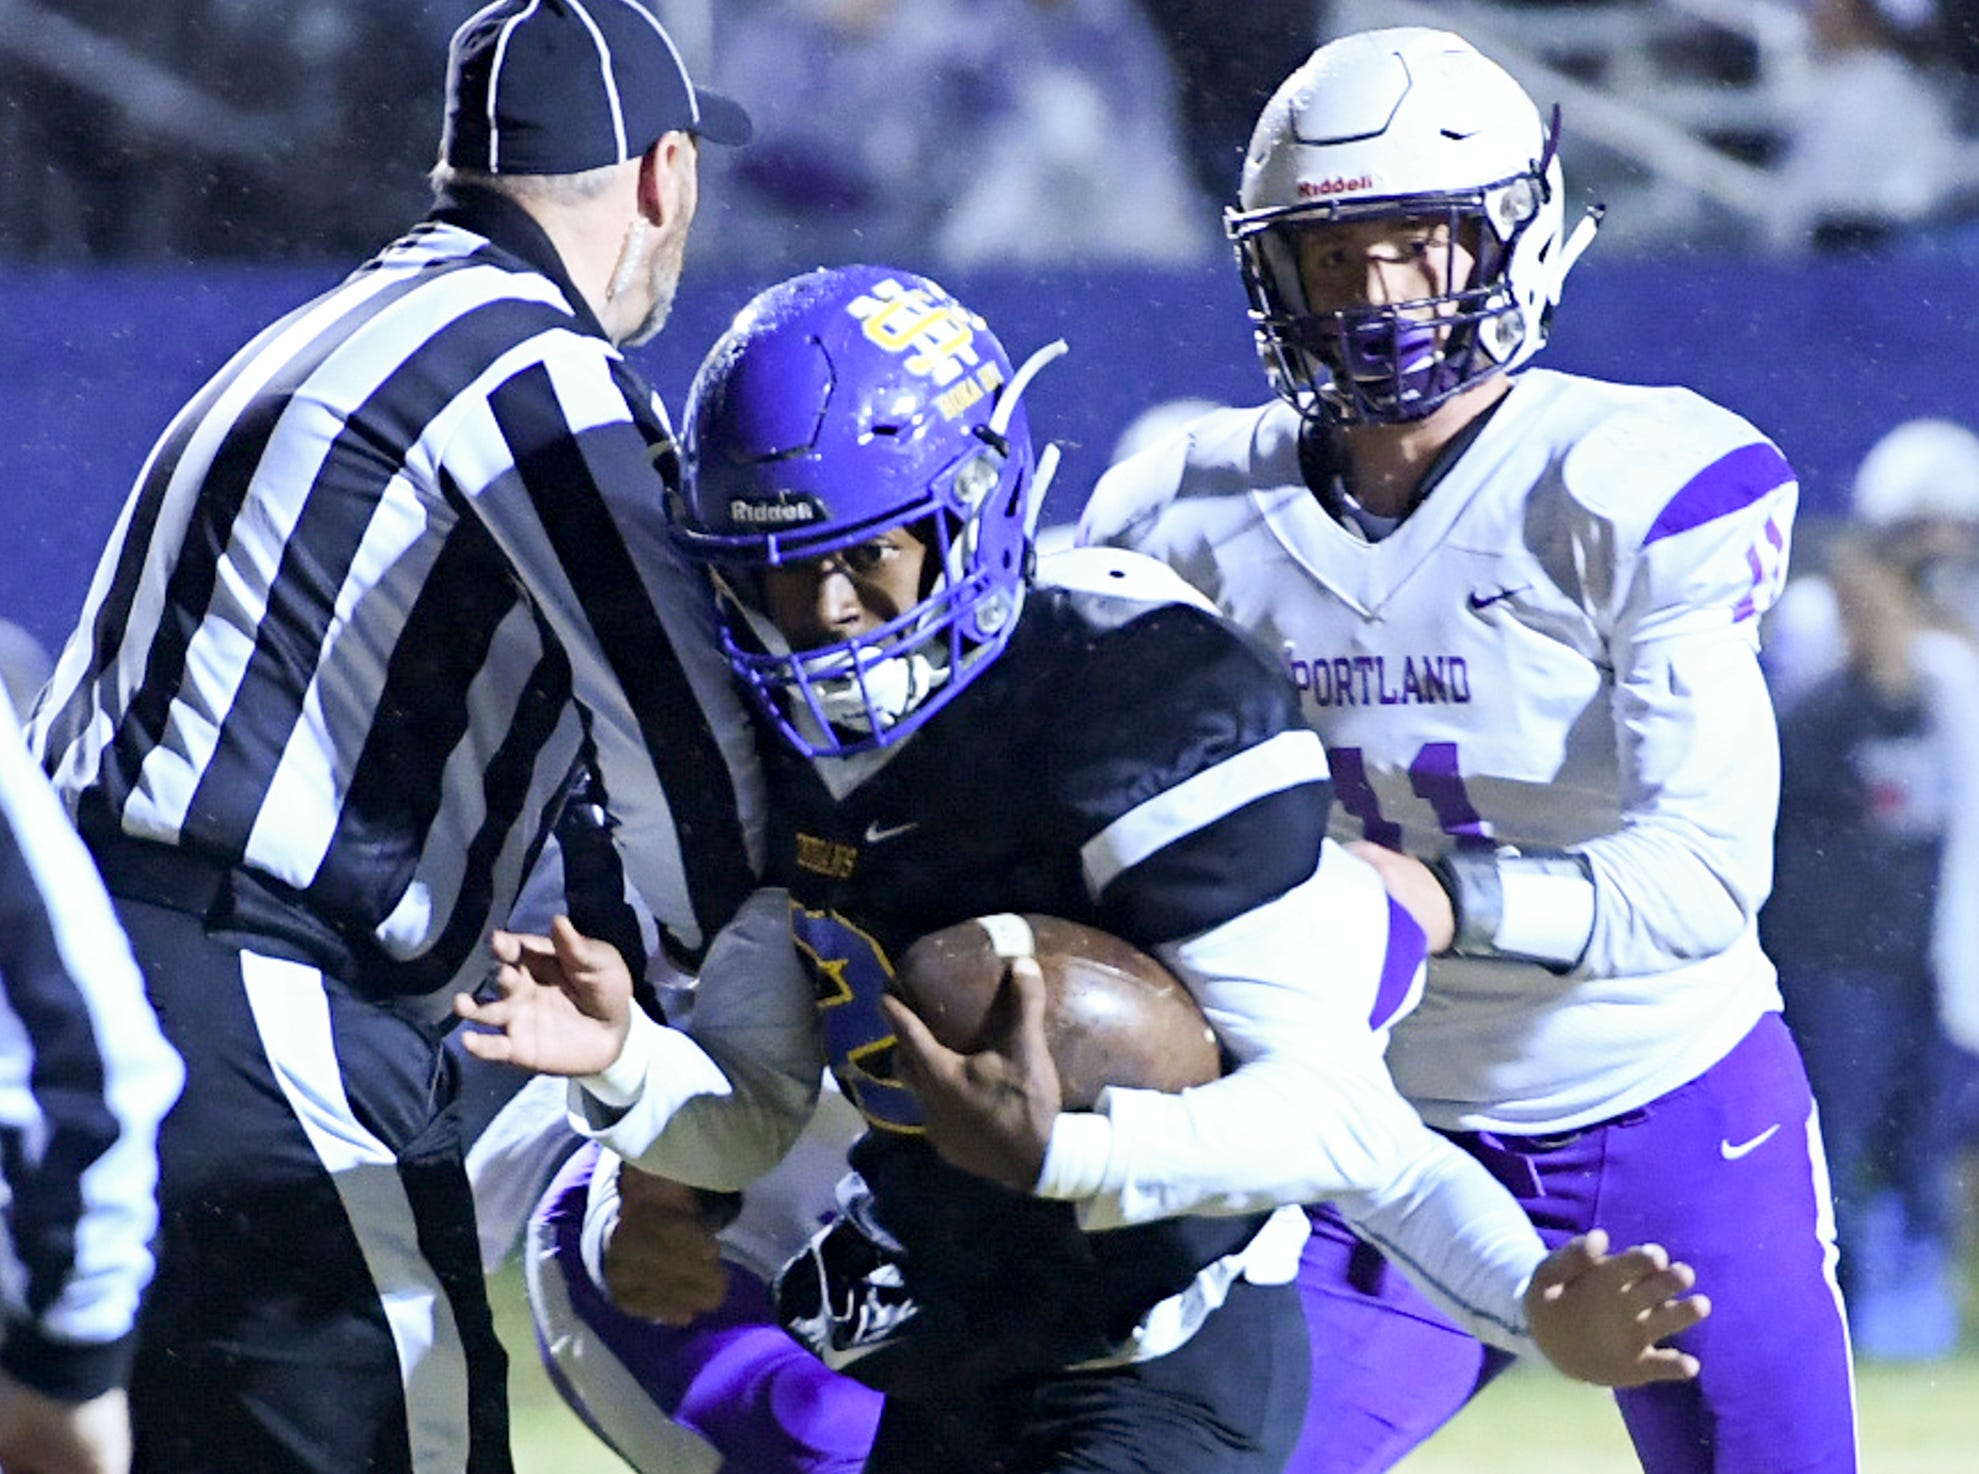 North Side's Kameron Farrington uses the referee for a screen to run in for a touchdown during their game against Portland, Friday, November 2. North Side defeated Portland, 50-6.